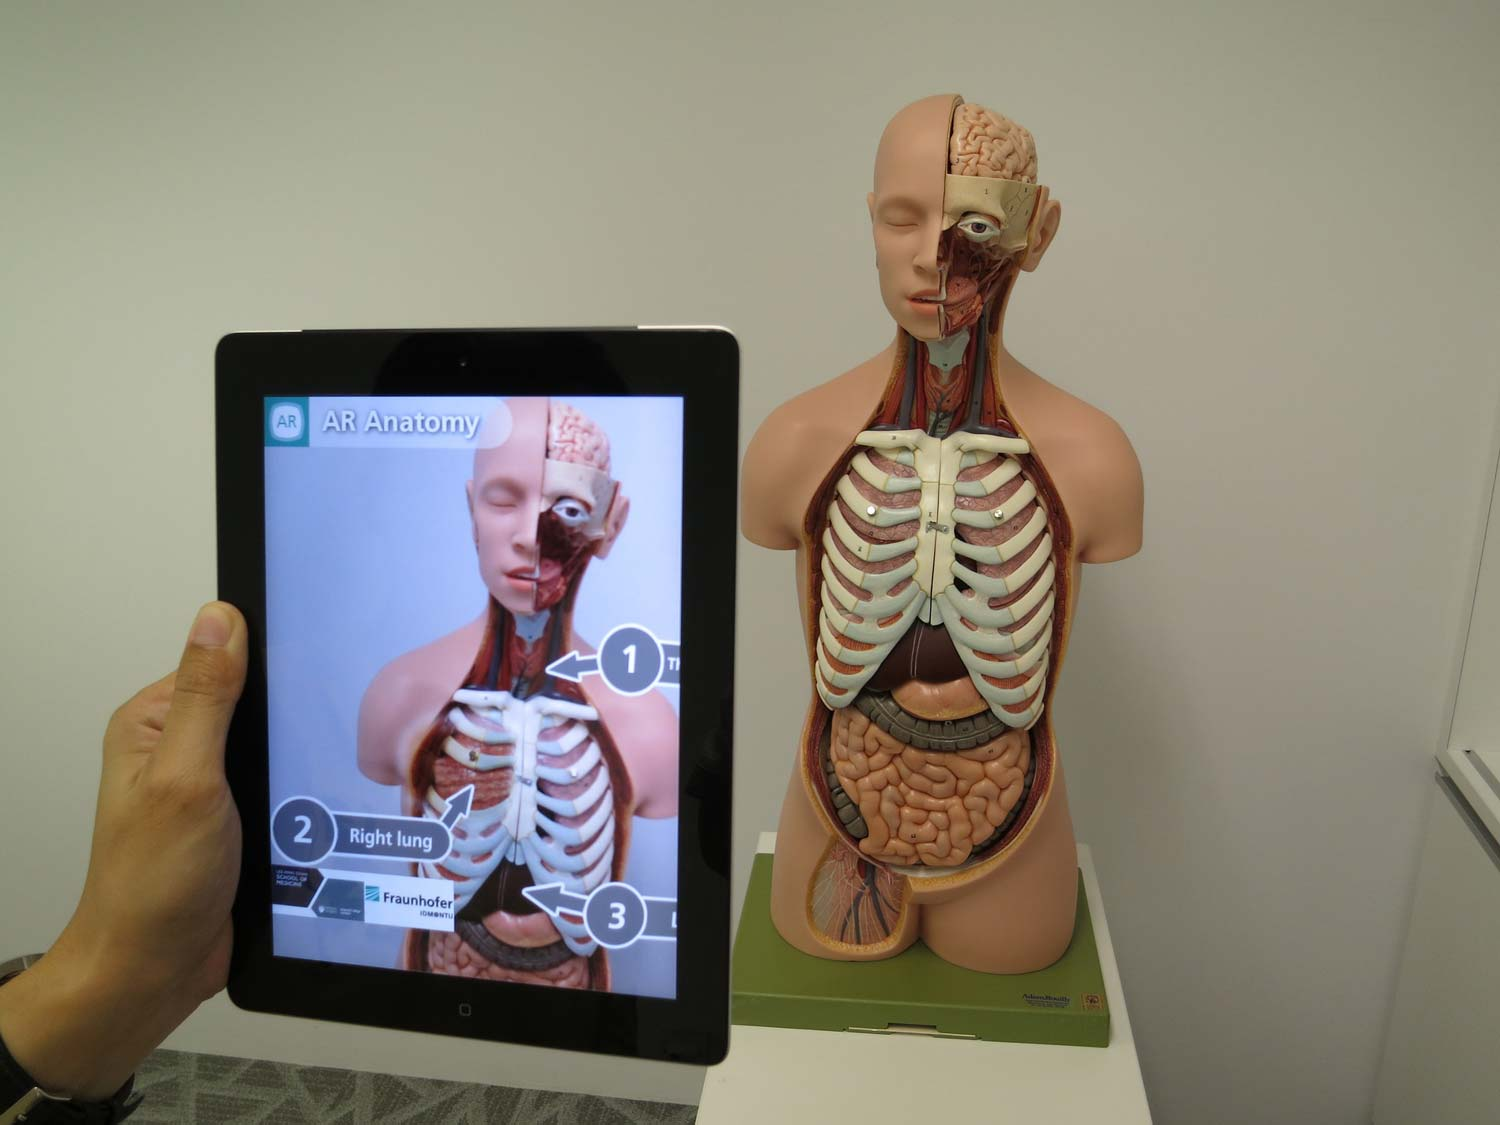 augmented-reality-1957411_1920-min